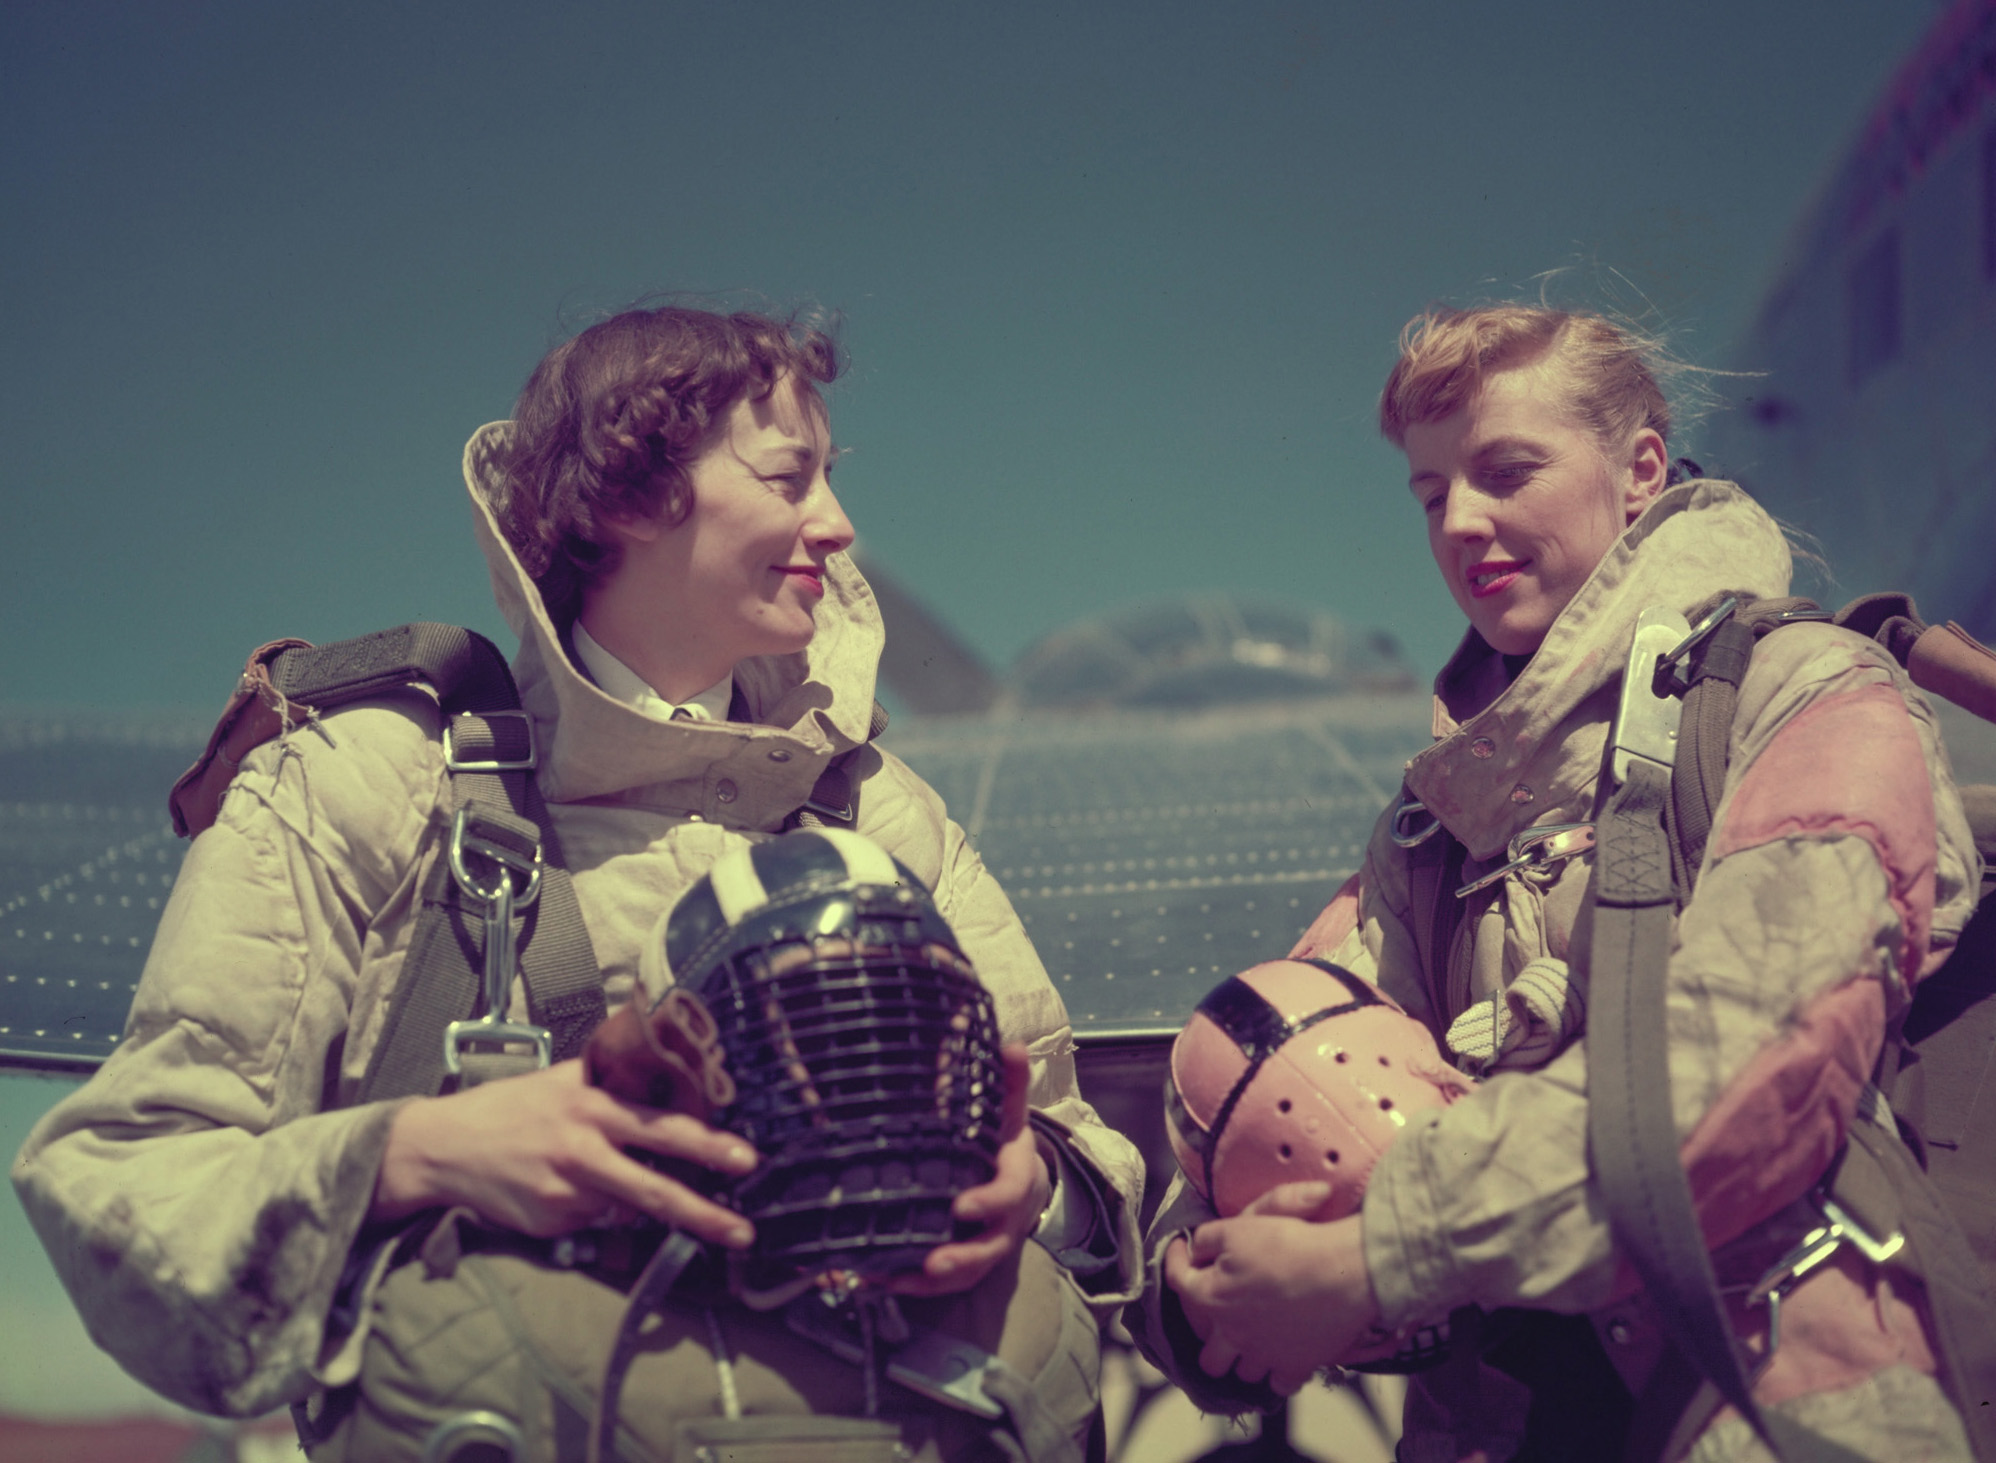 Flying Officer Marian Neilly (left) and Flight Officer Marion MacDonald, both nursing sisters, wear their para rescue jumping gear during Operation Pike Peak in Colorado in March 1955. PHOTO: DND Archives, PC-676